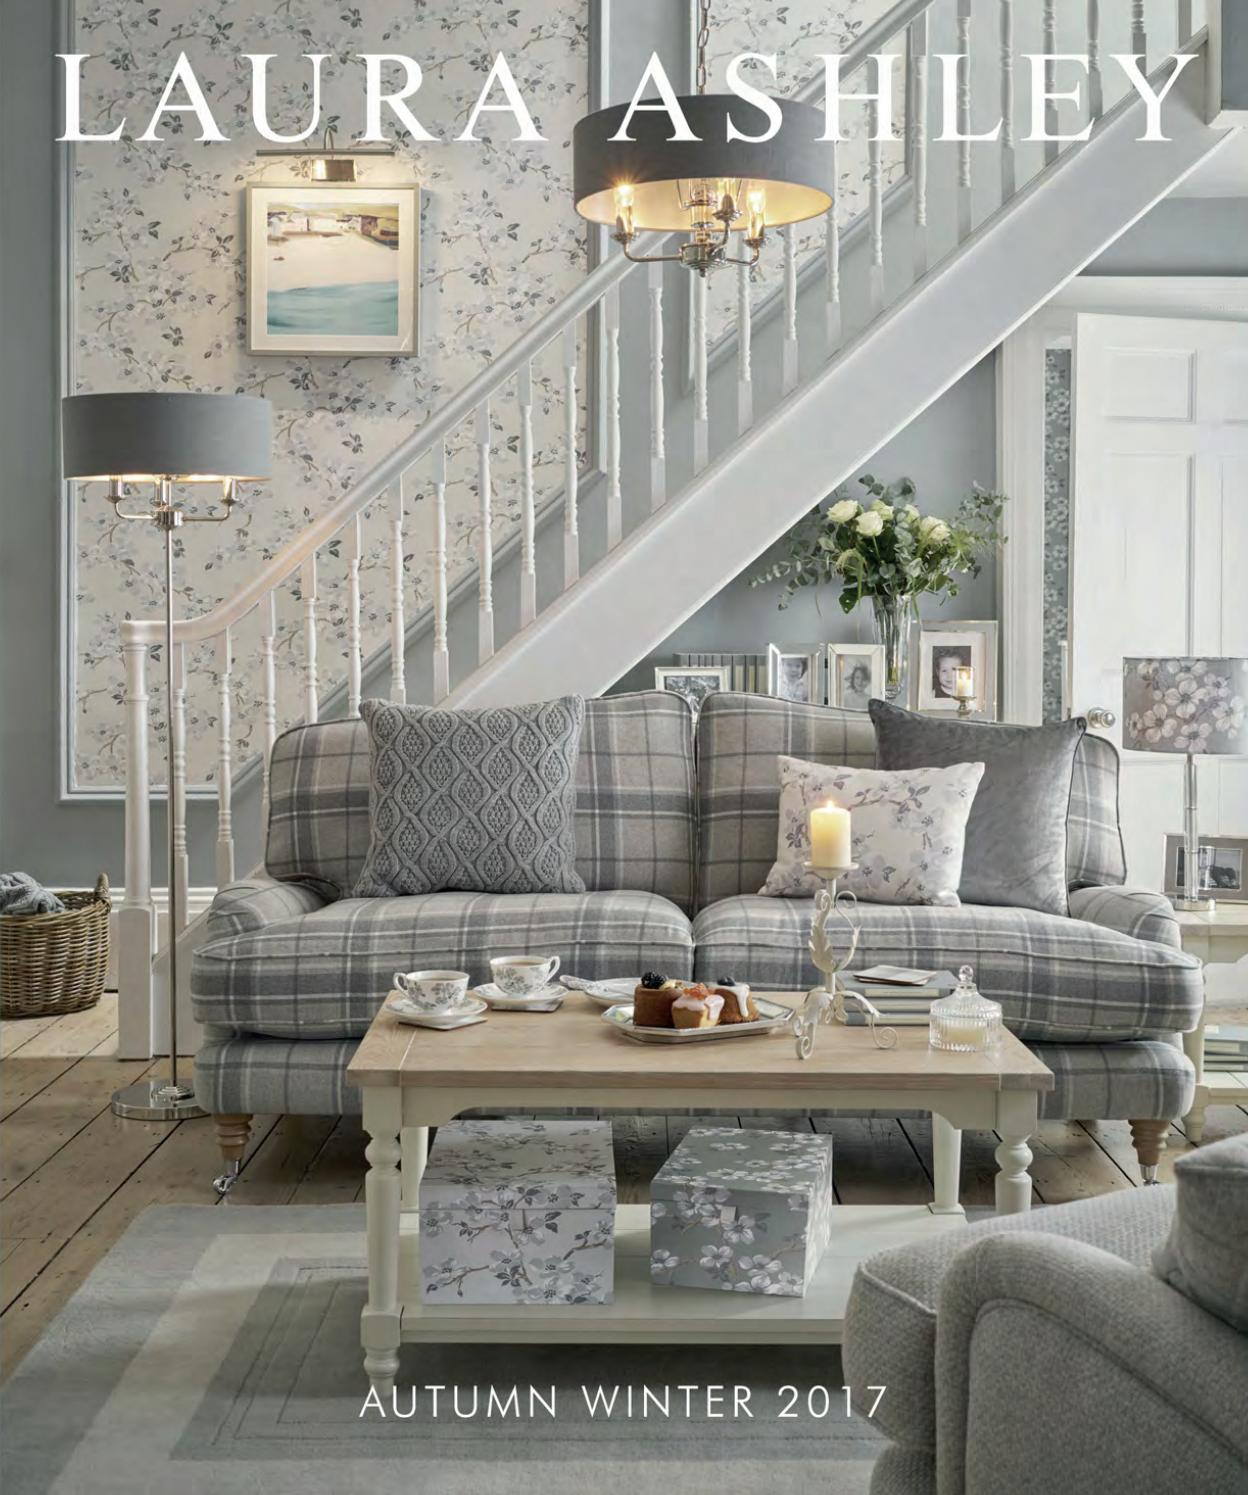 Laura ashley home aw 2017 new catalogue by stanislav - Catalogo laura ashley ...